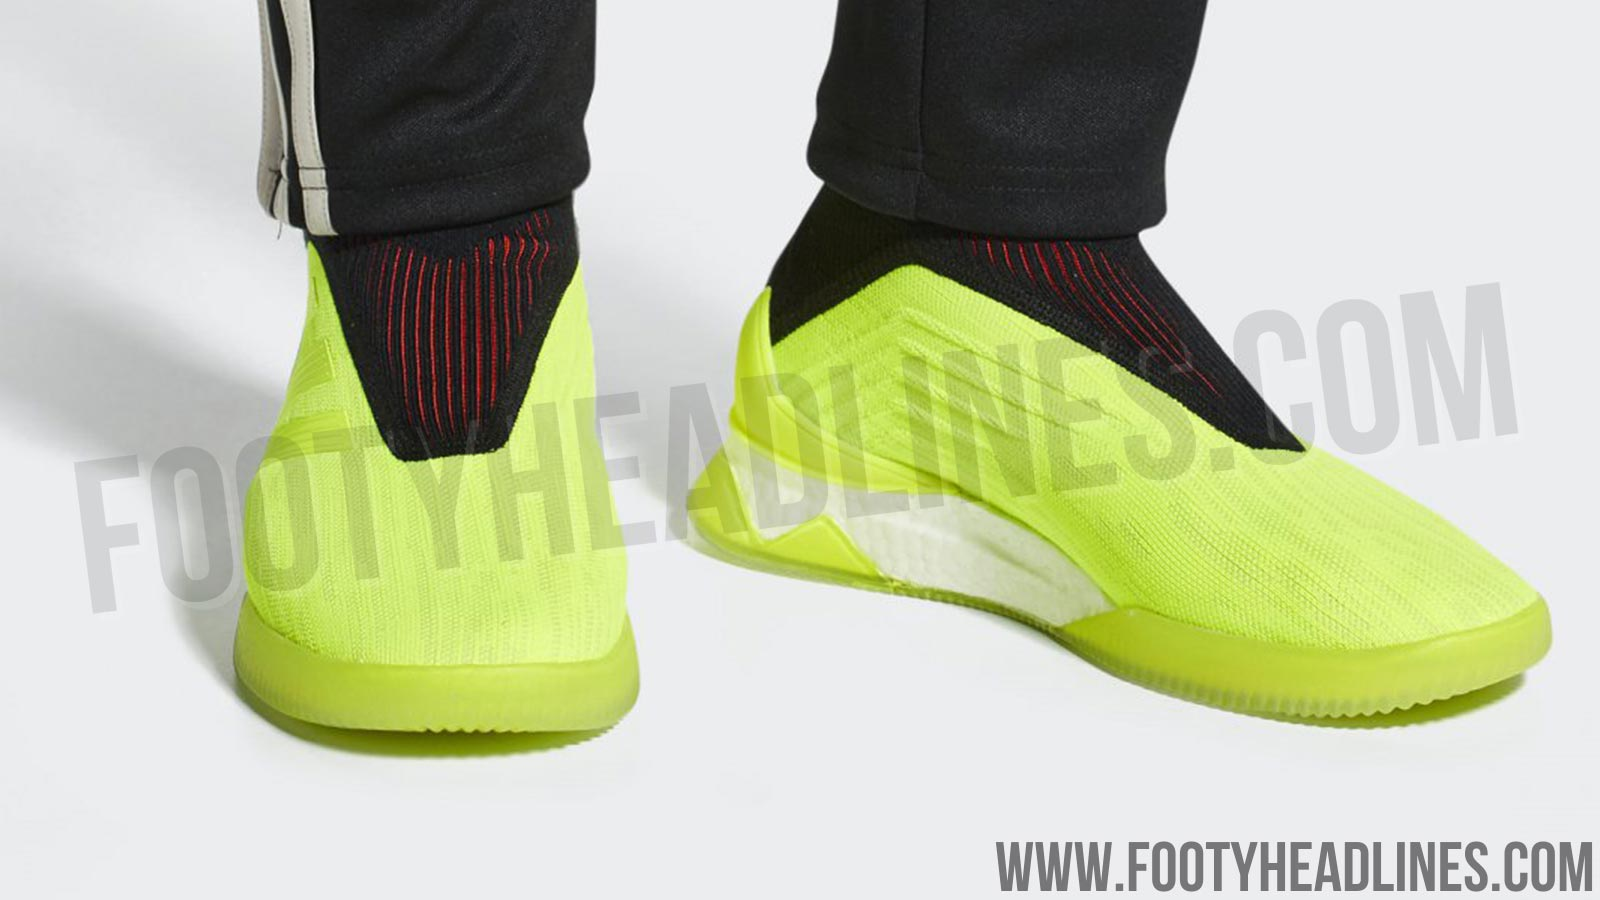 e7fc6b86aa2 What do you think of the Adidas Predator Tango 18+  Energy Mode  shoe  Drop  us a line below